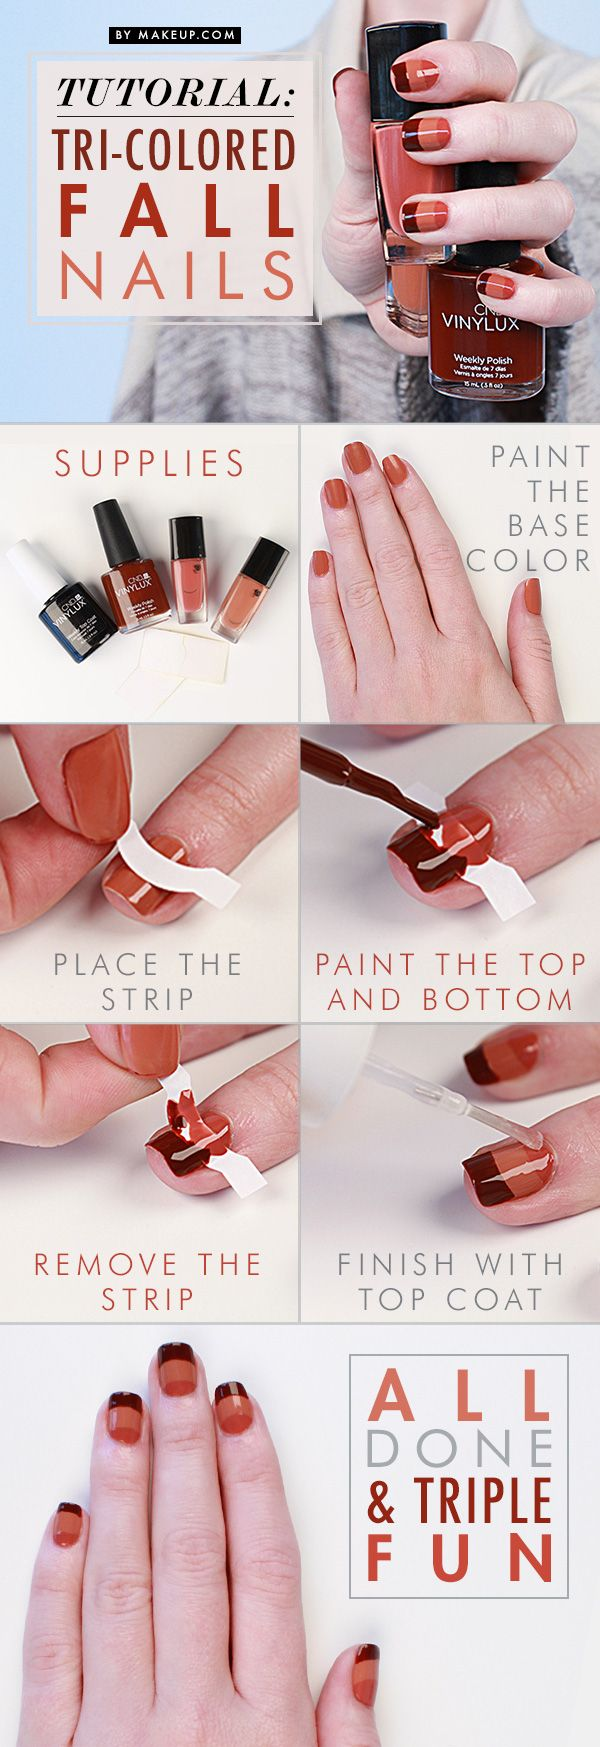 Manicure Tutorial: Tri-Colored Fall Nail Art